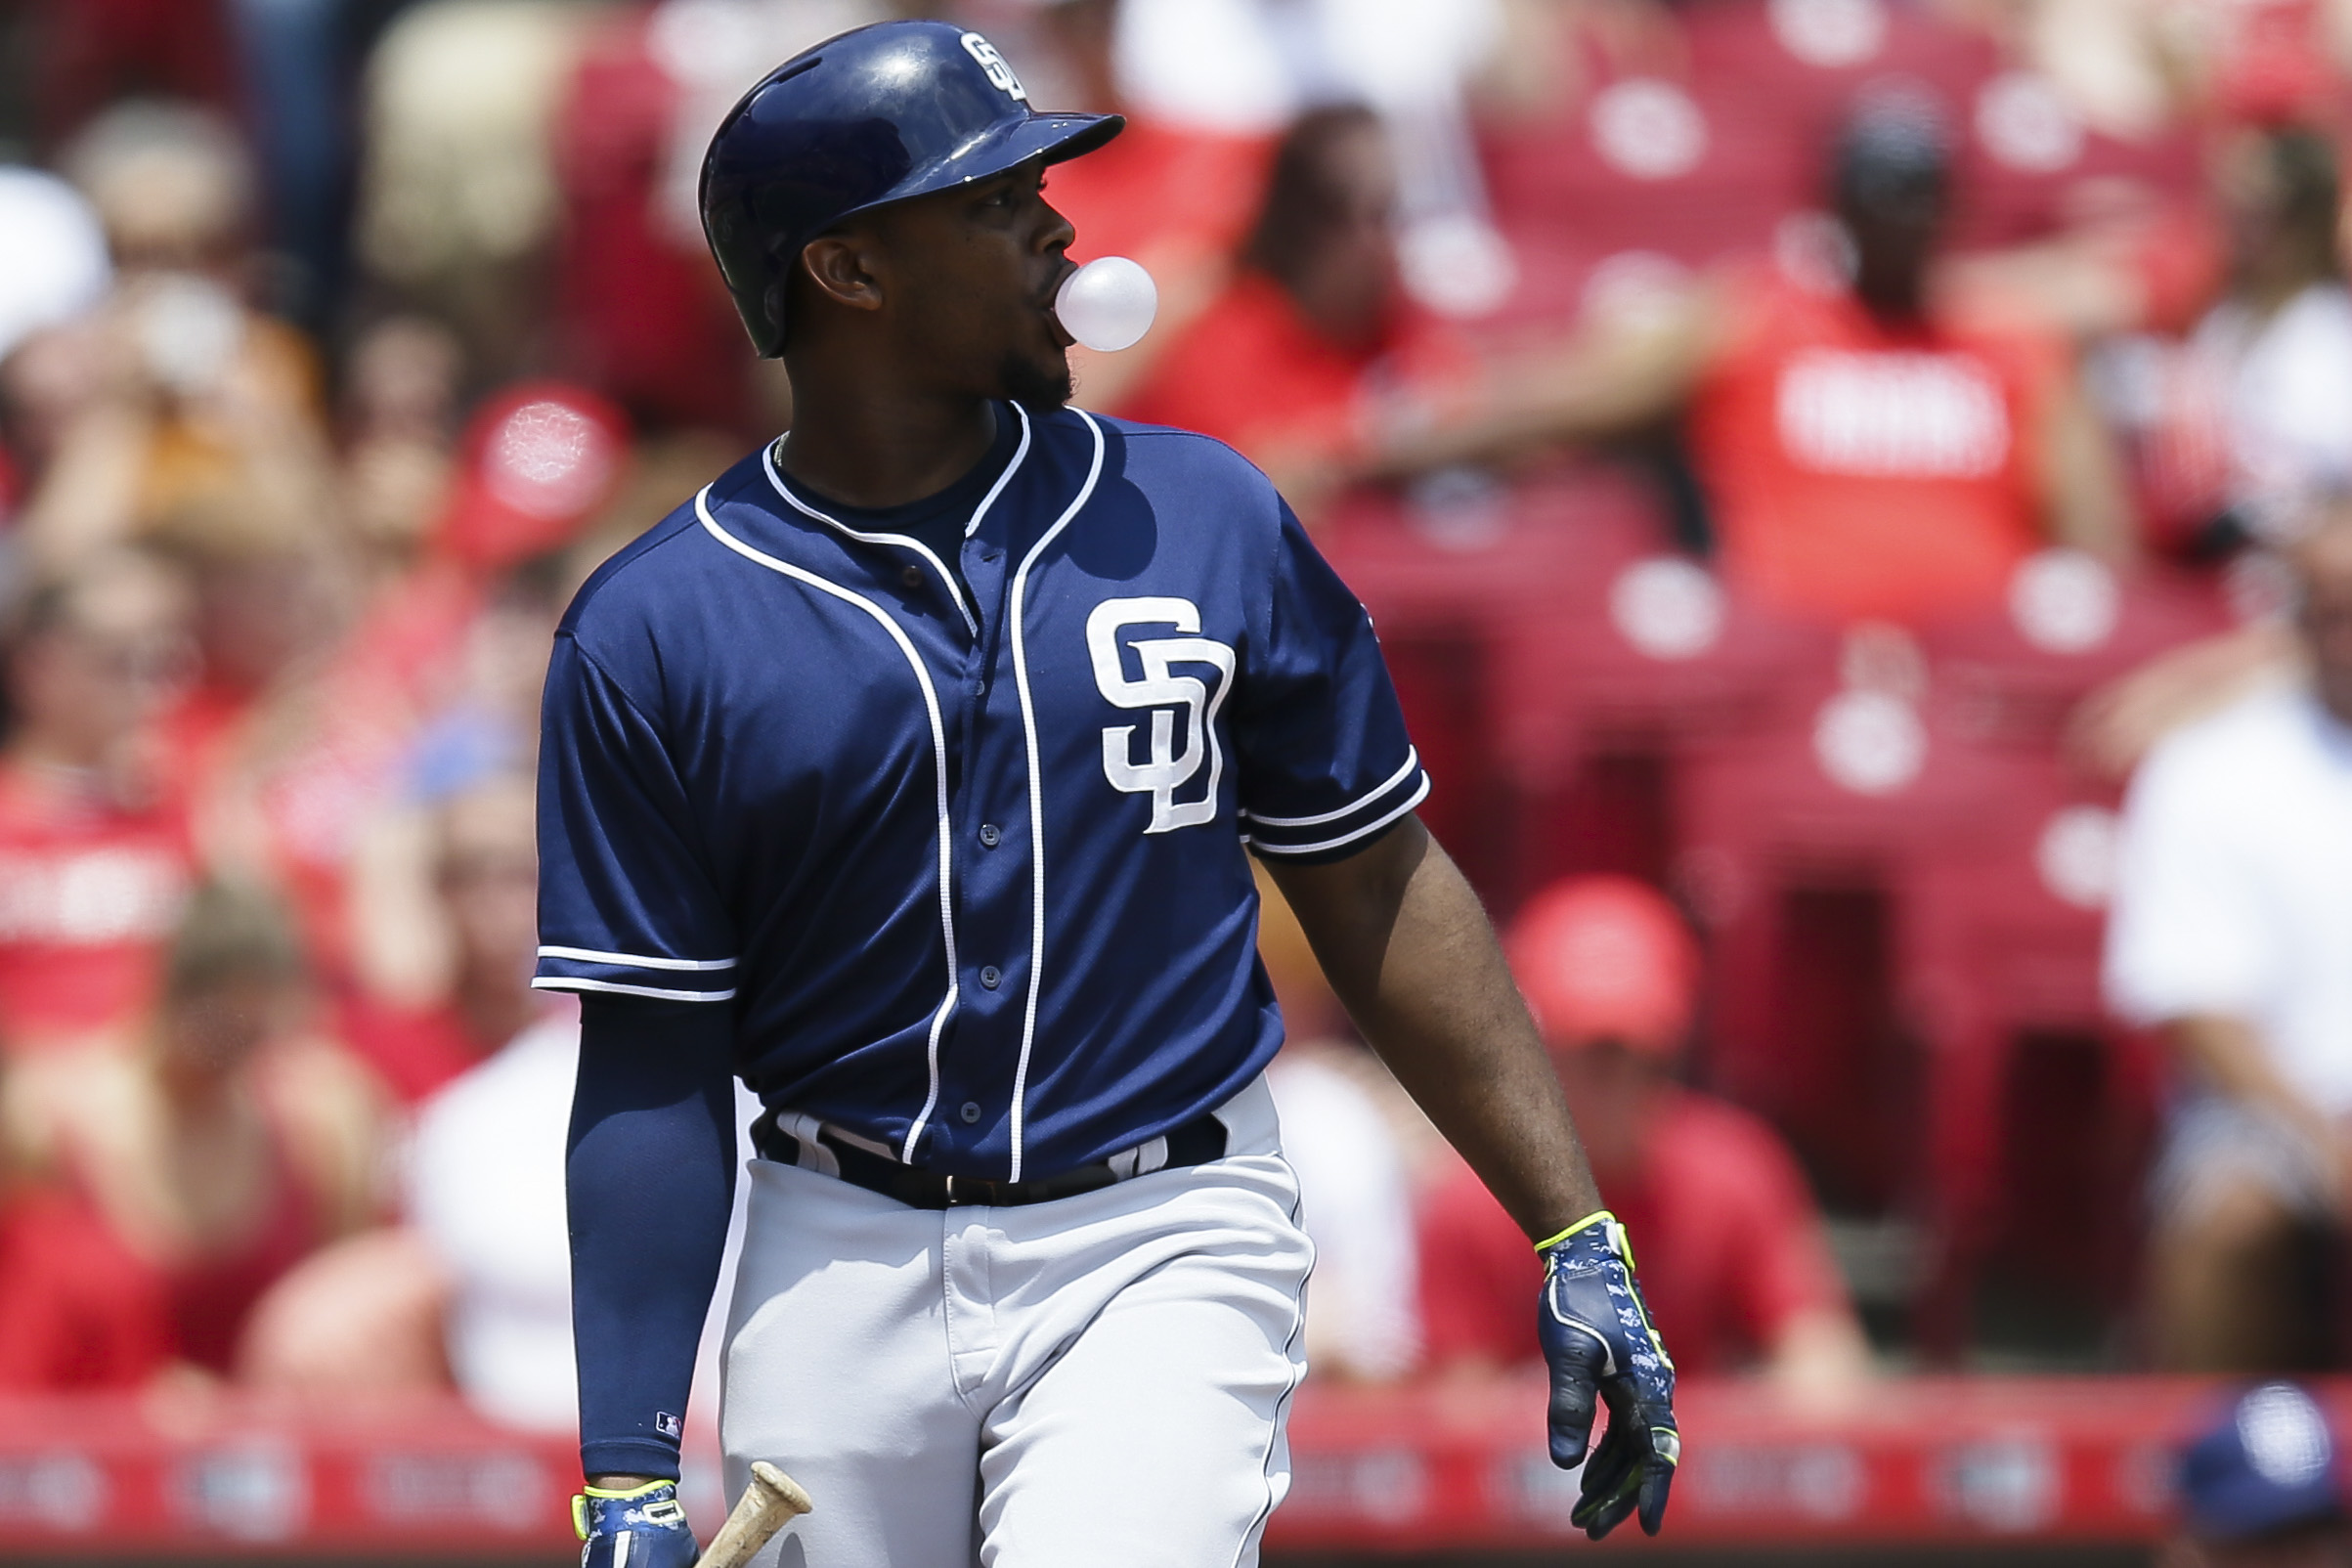 San Diego Padres' Justin Upton blows a gum bubble while at bat in the third inning of a baseball game against the Cincinnati Reds, Sunday, June 7, 2015, in Cincinnati. (AP Photo/John Minchillo)